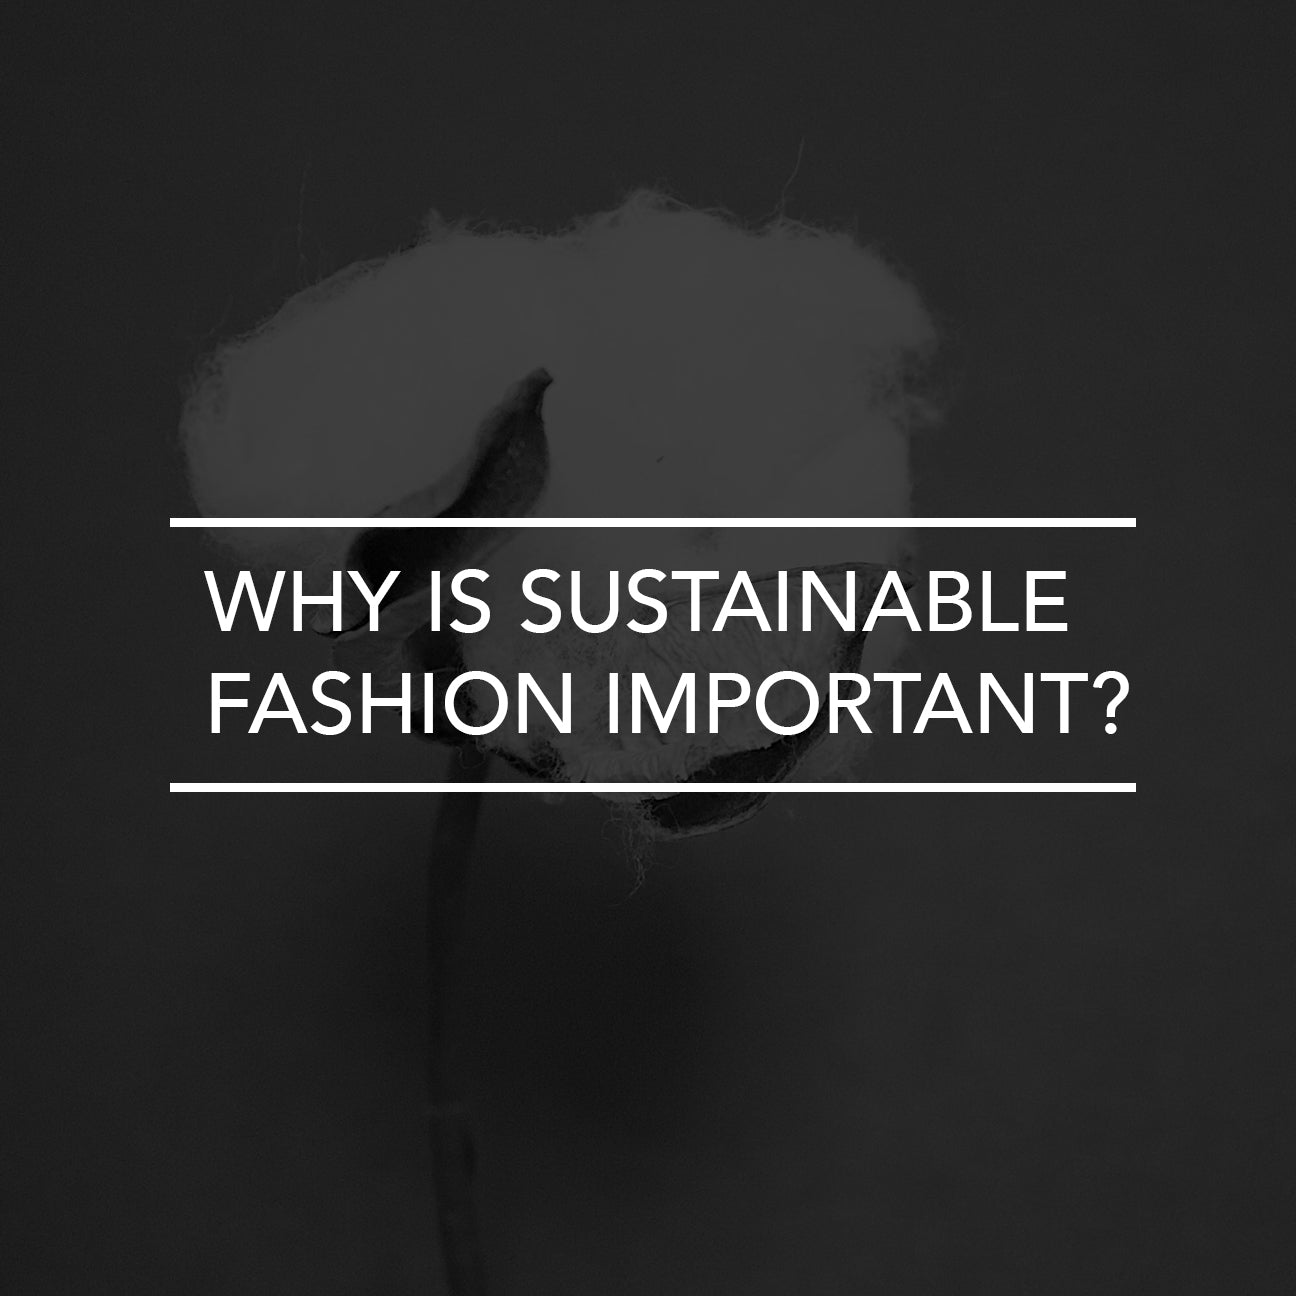 Why is Sustainable Fashion Important?